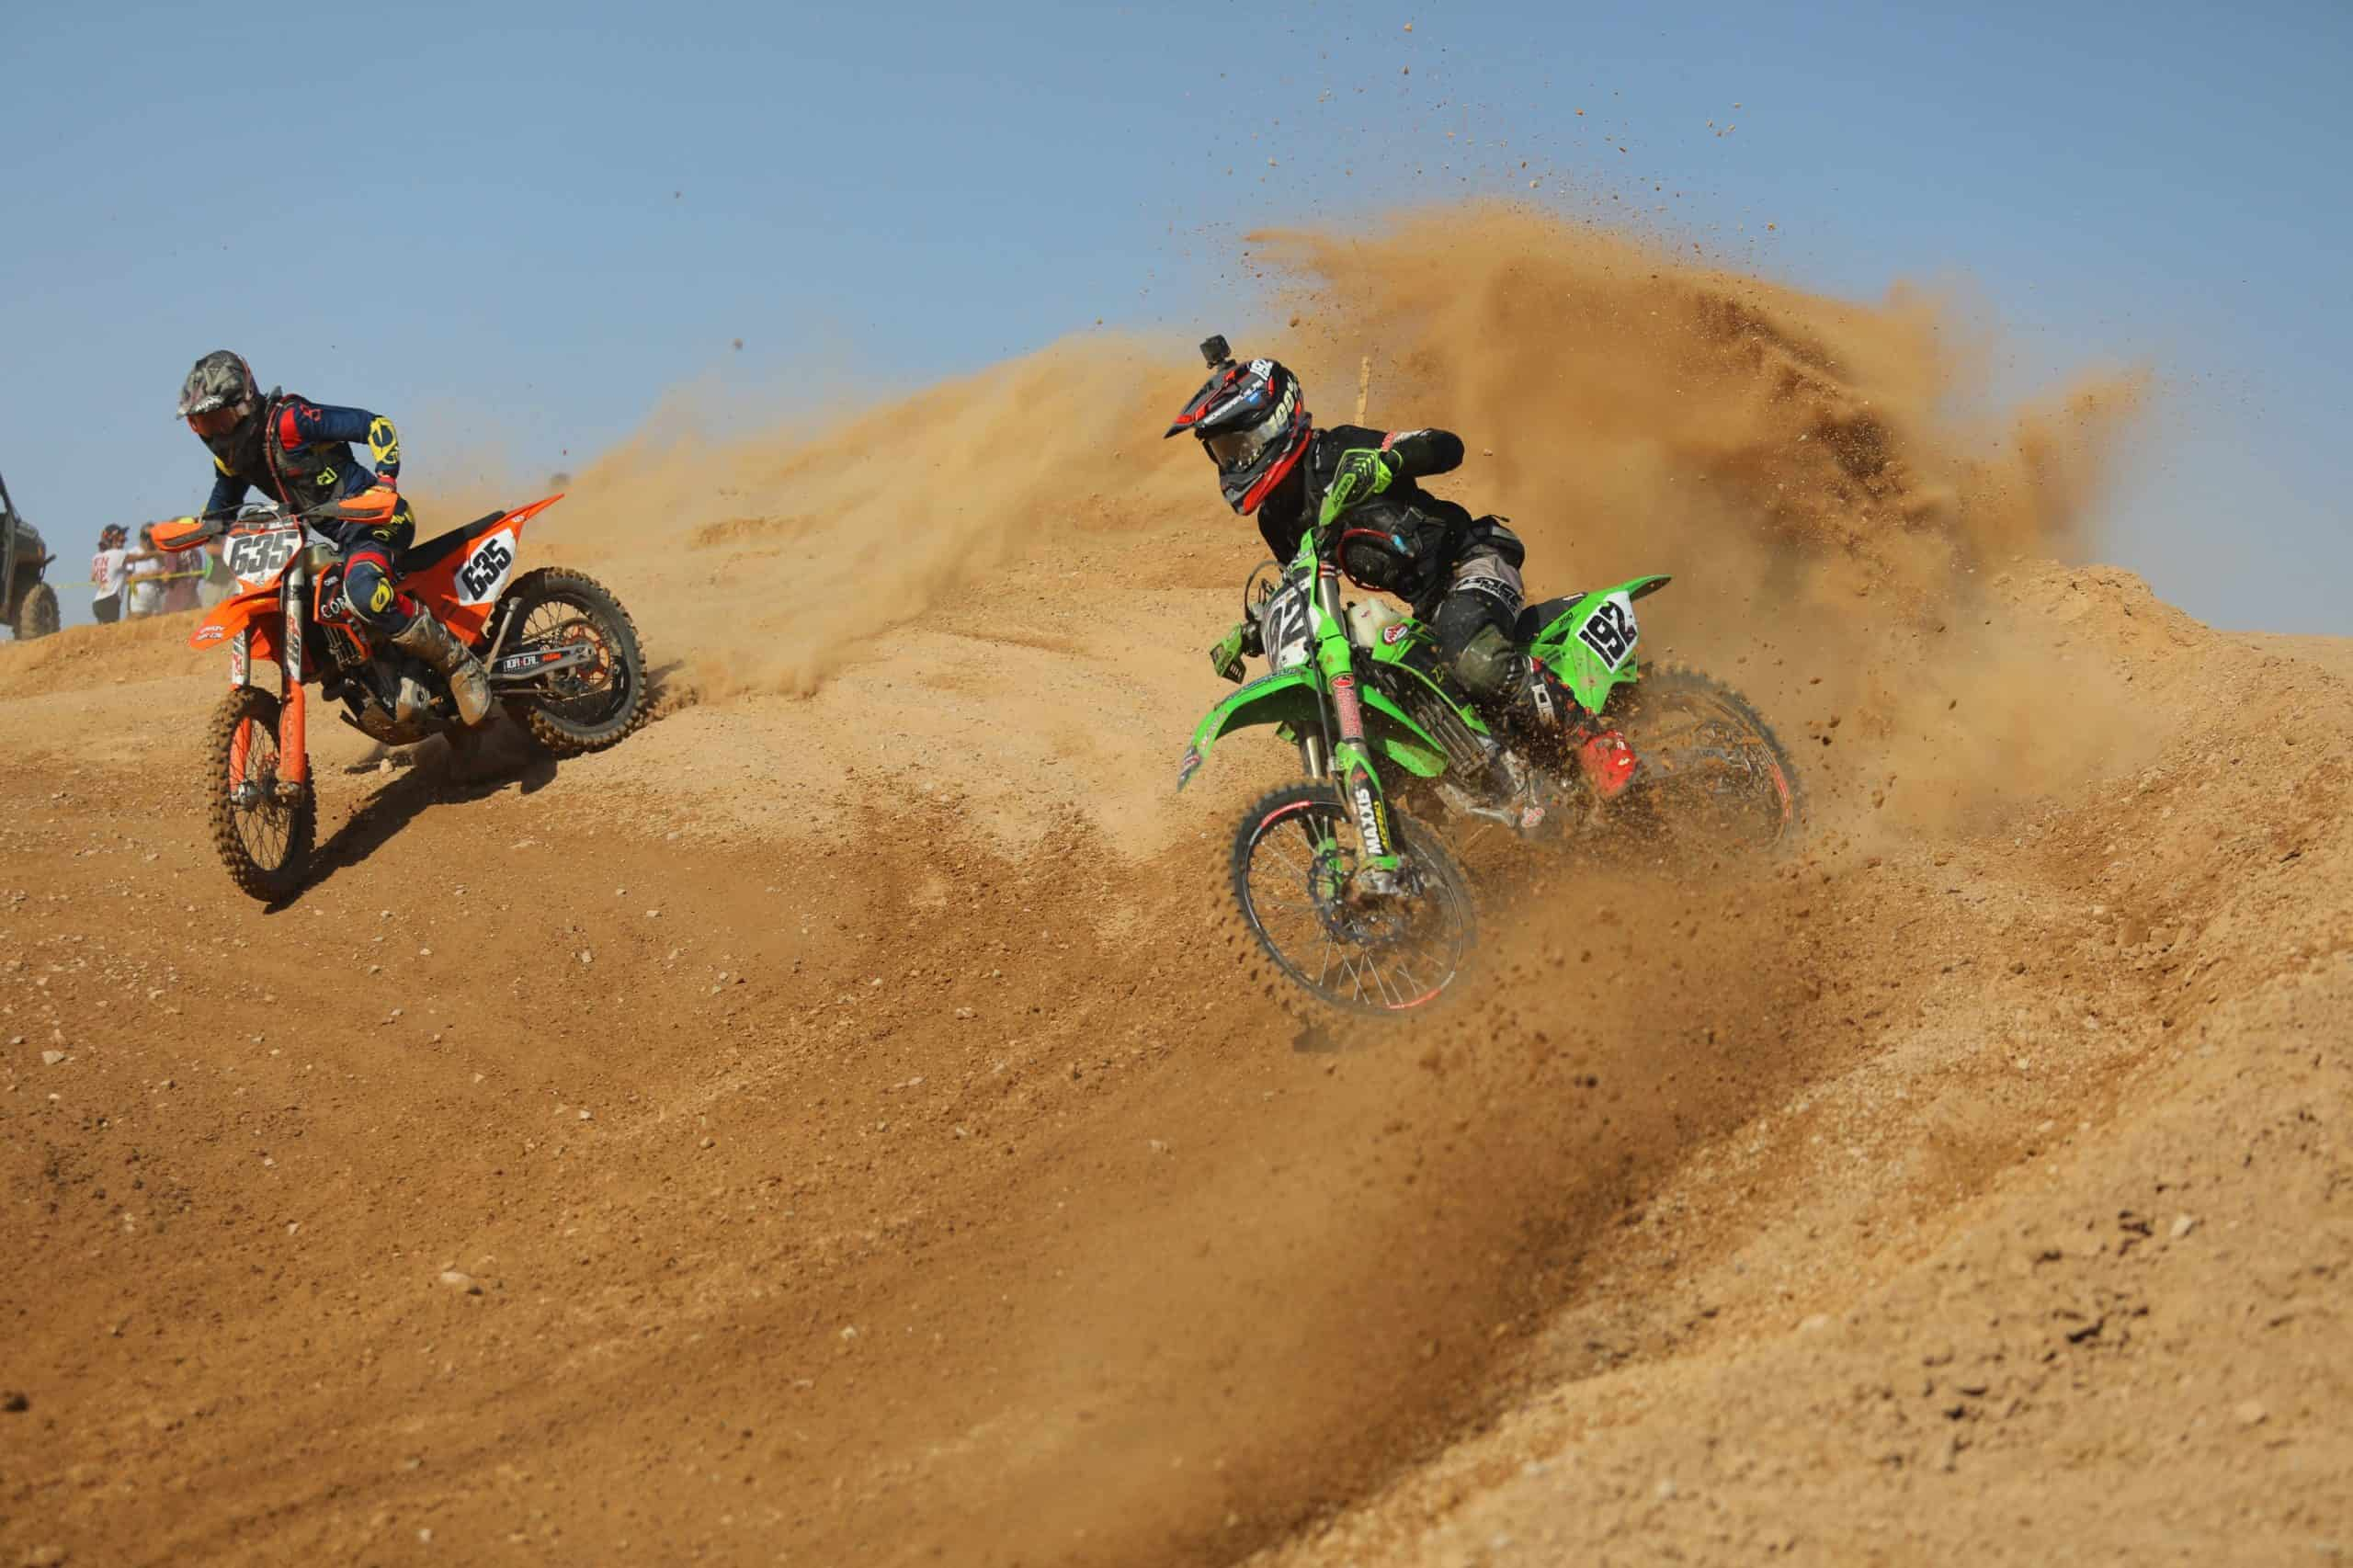 JP Alvarez riding his kx250 at the 2020 blythe worcs race